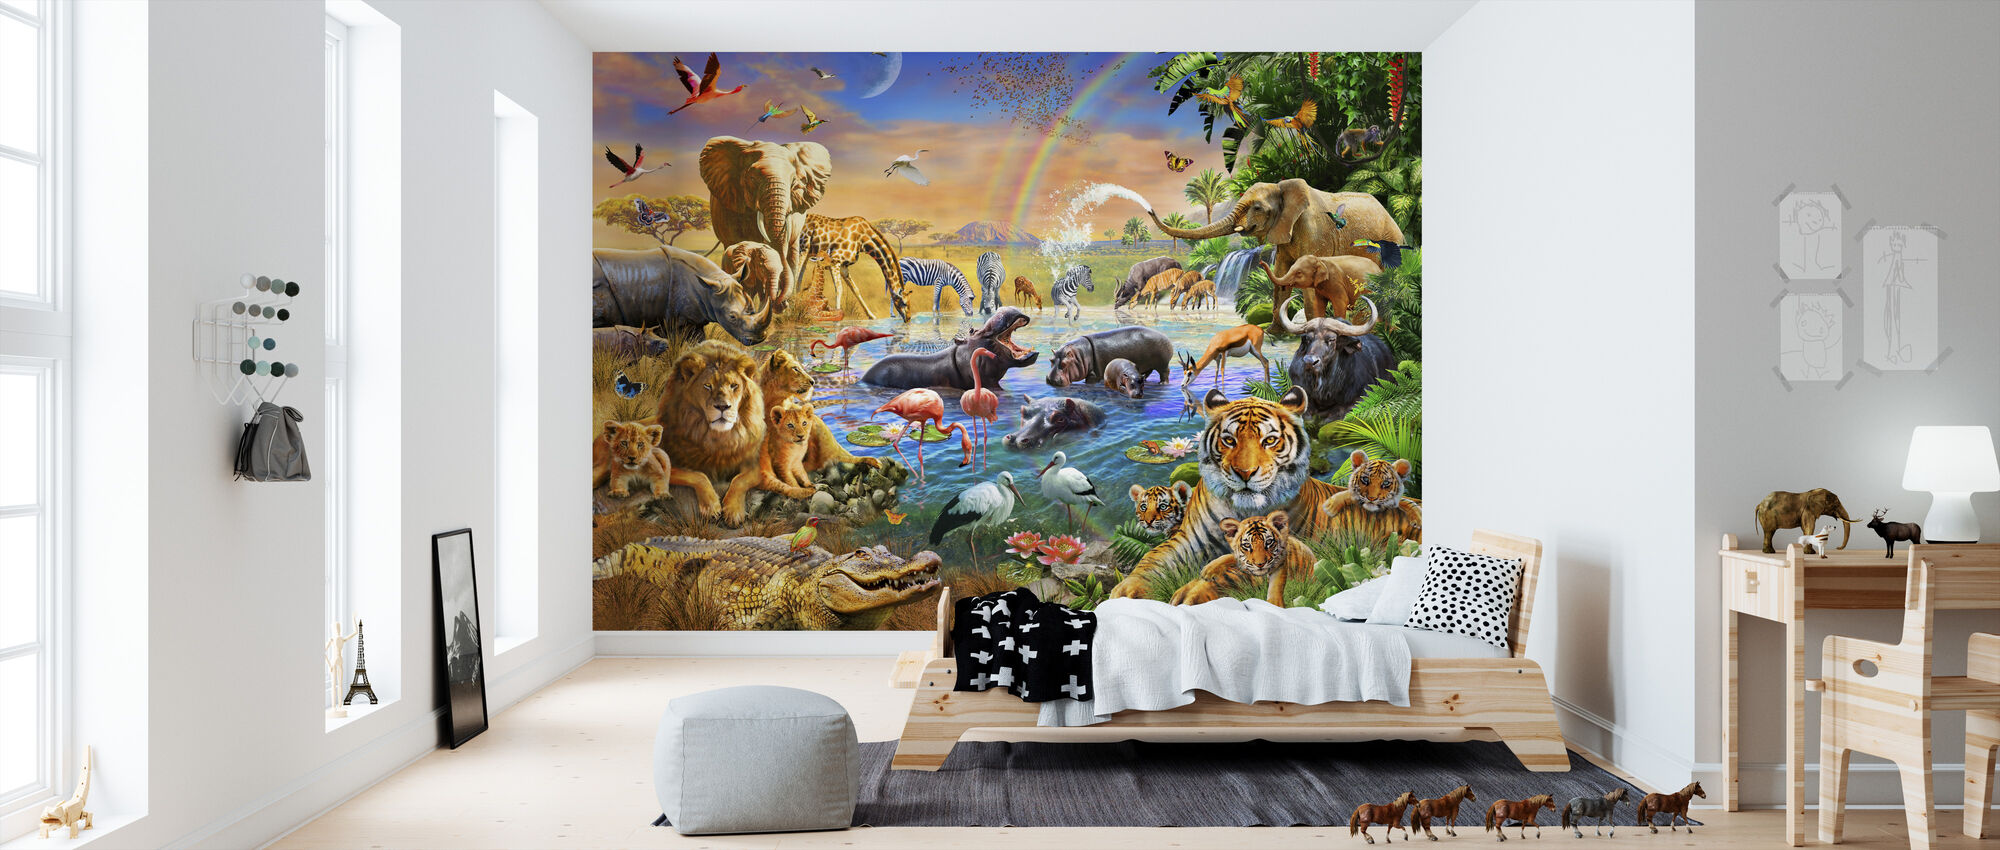 Savannah Jungle Waterhole - Wallpaper - Kids Room